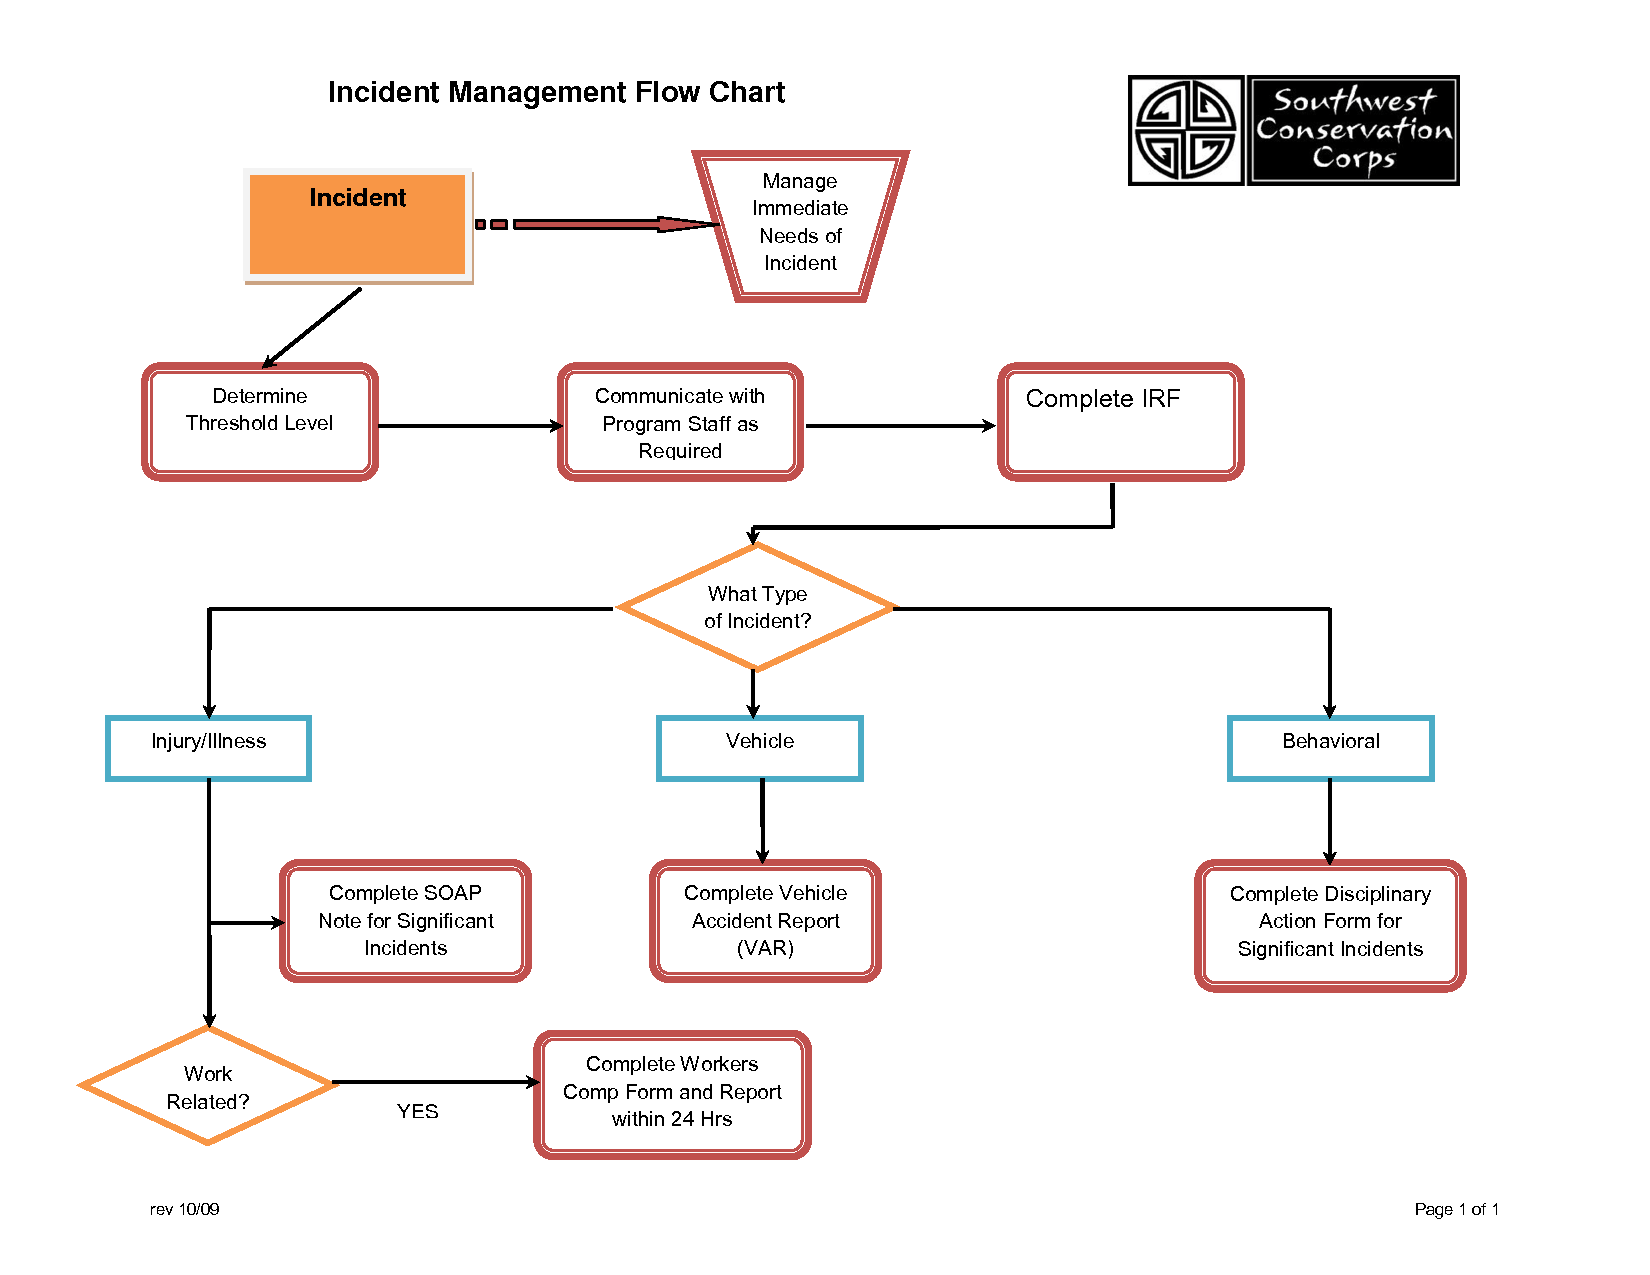 Program Management Process Templates | Incident Management Flow Chart